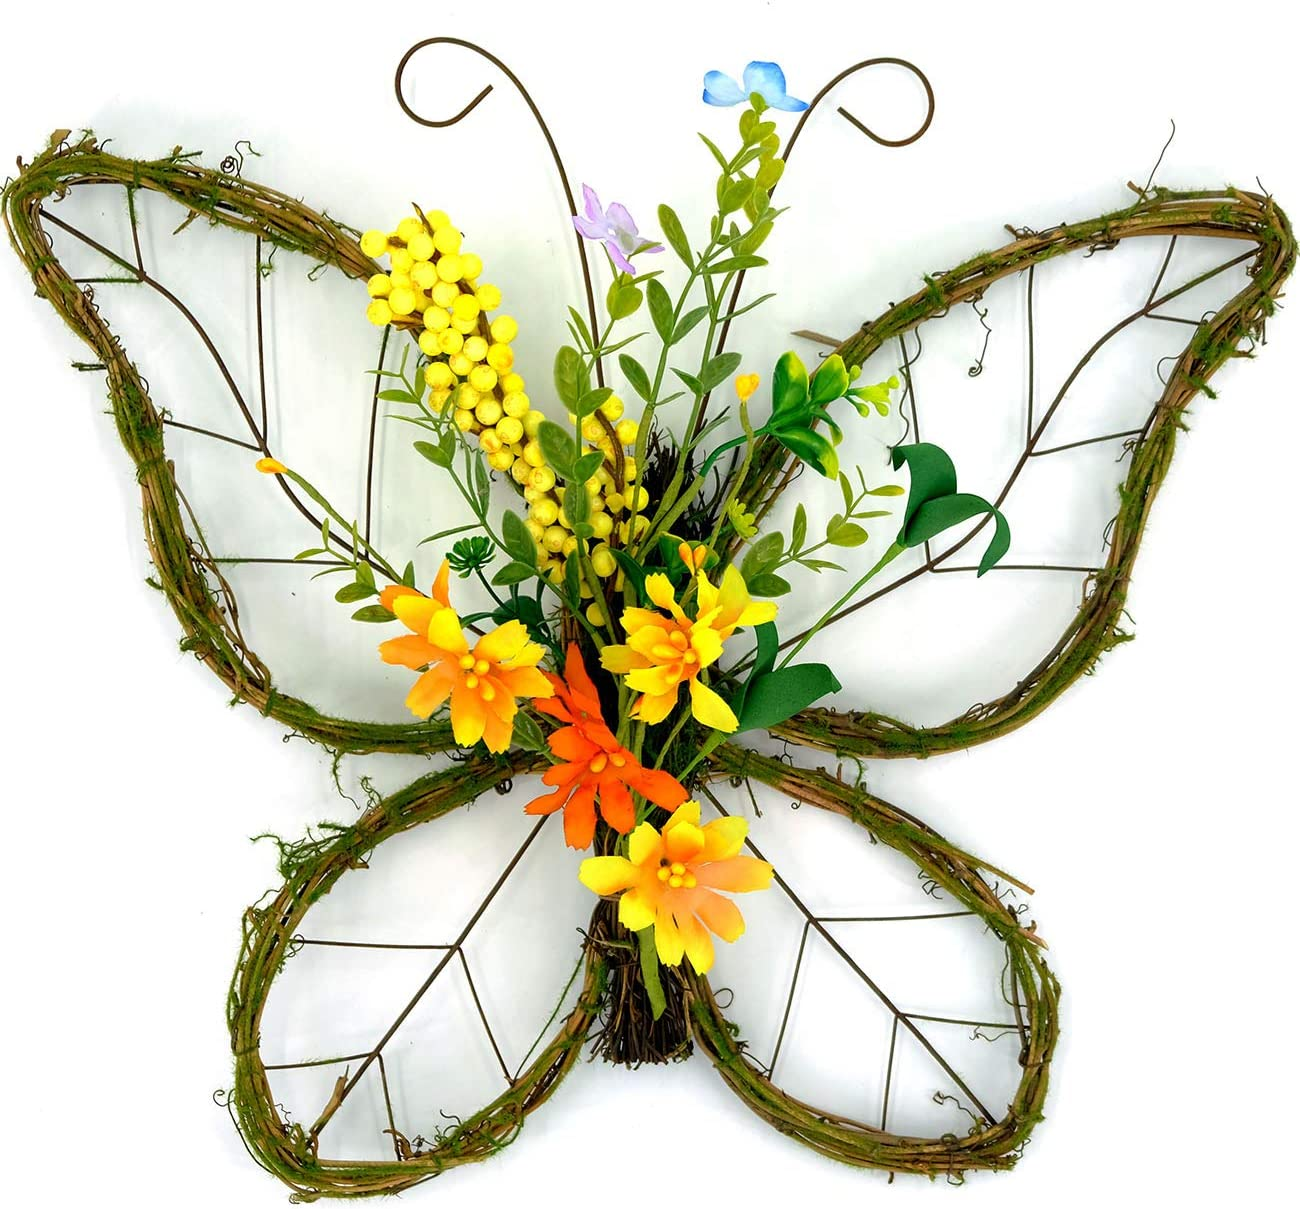 idyllic Butterfly Shaped Wreath with Pastel Berries and Floral Spring Artificial Wreaths for Front Door Decor